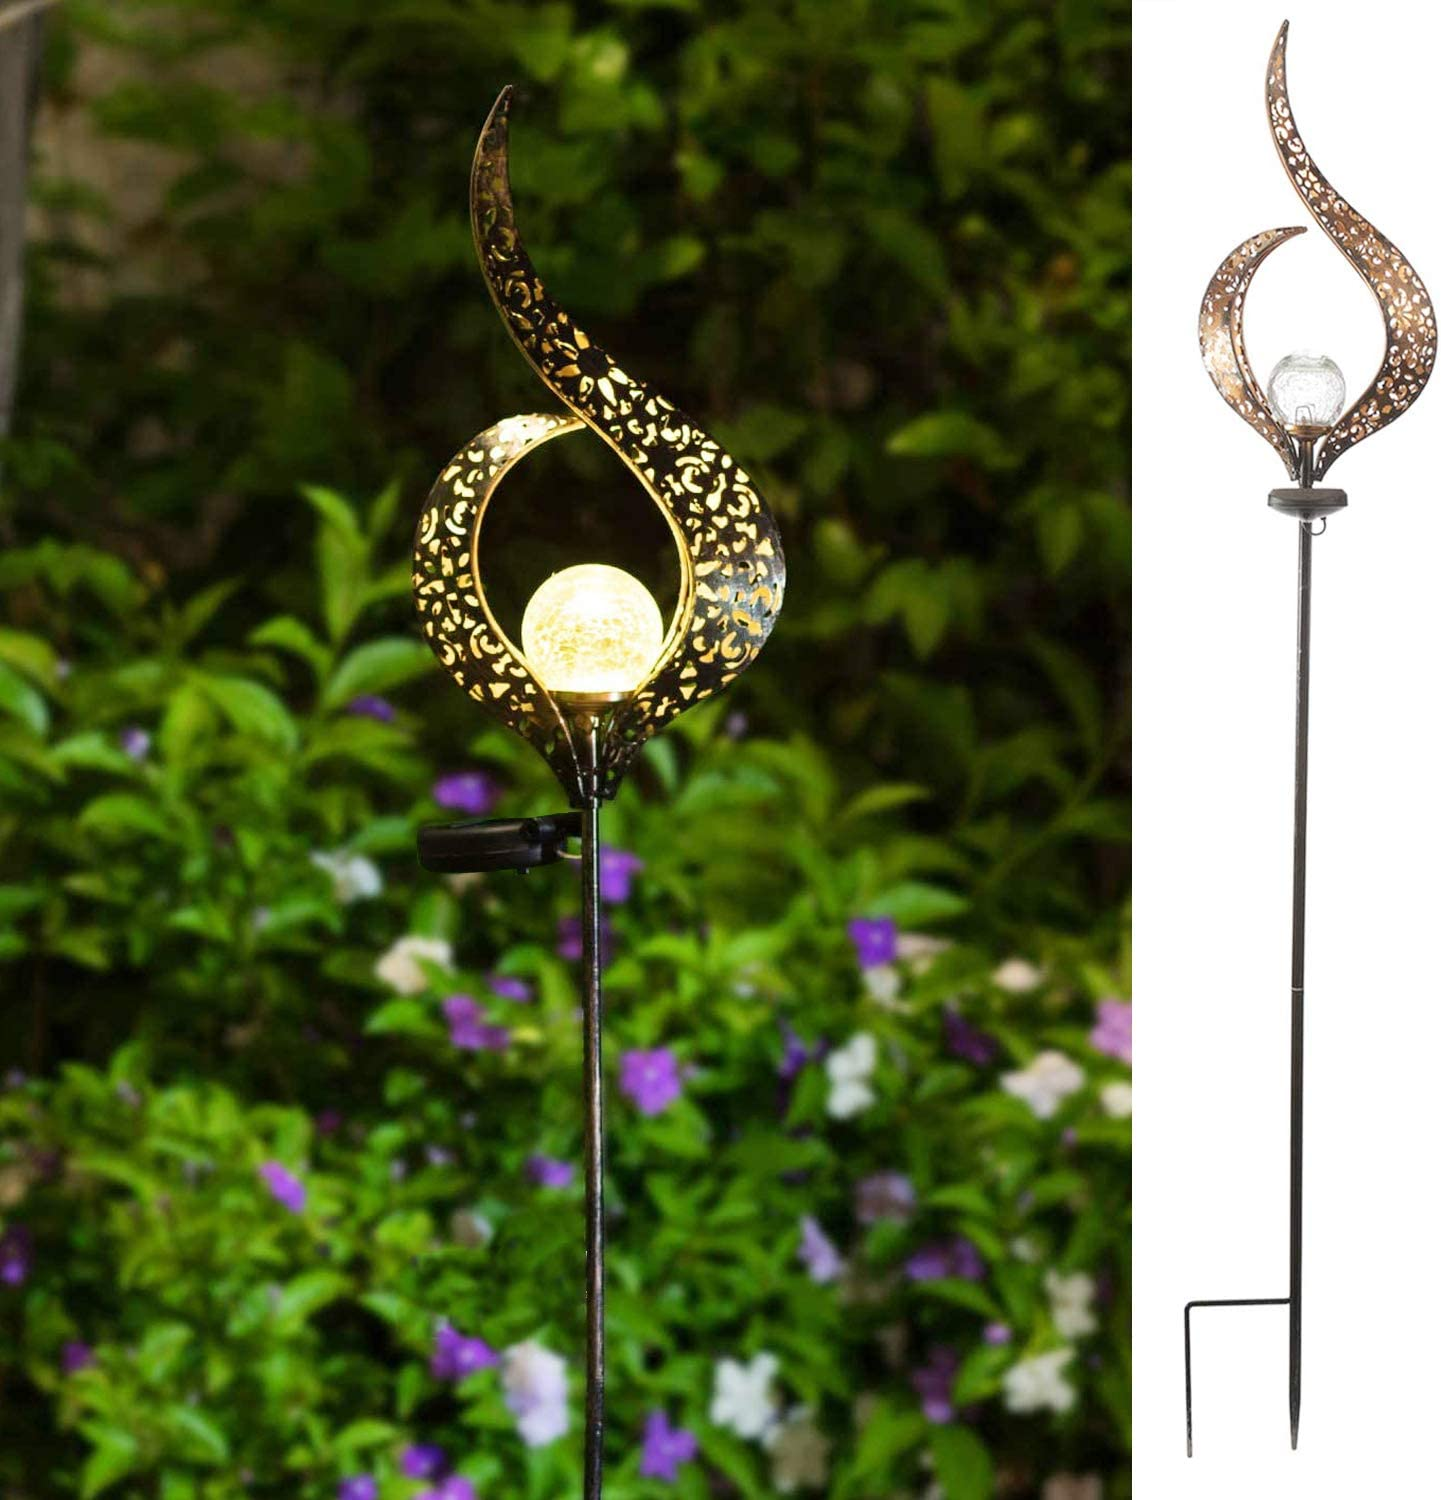 """MH 40""""H Solar Flame Garden Lights Crackle Glass Globe Flame Metal Yard Stake Lights,Waterproof Warm White F3 LED for Lawn, Pathway, Patio or Courtyard"""